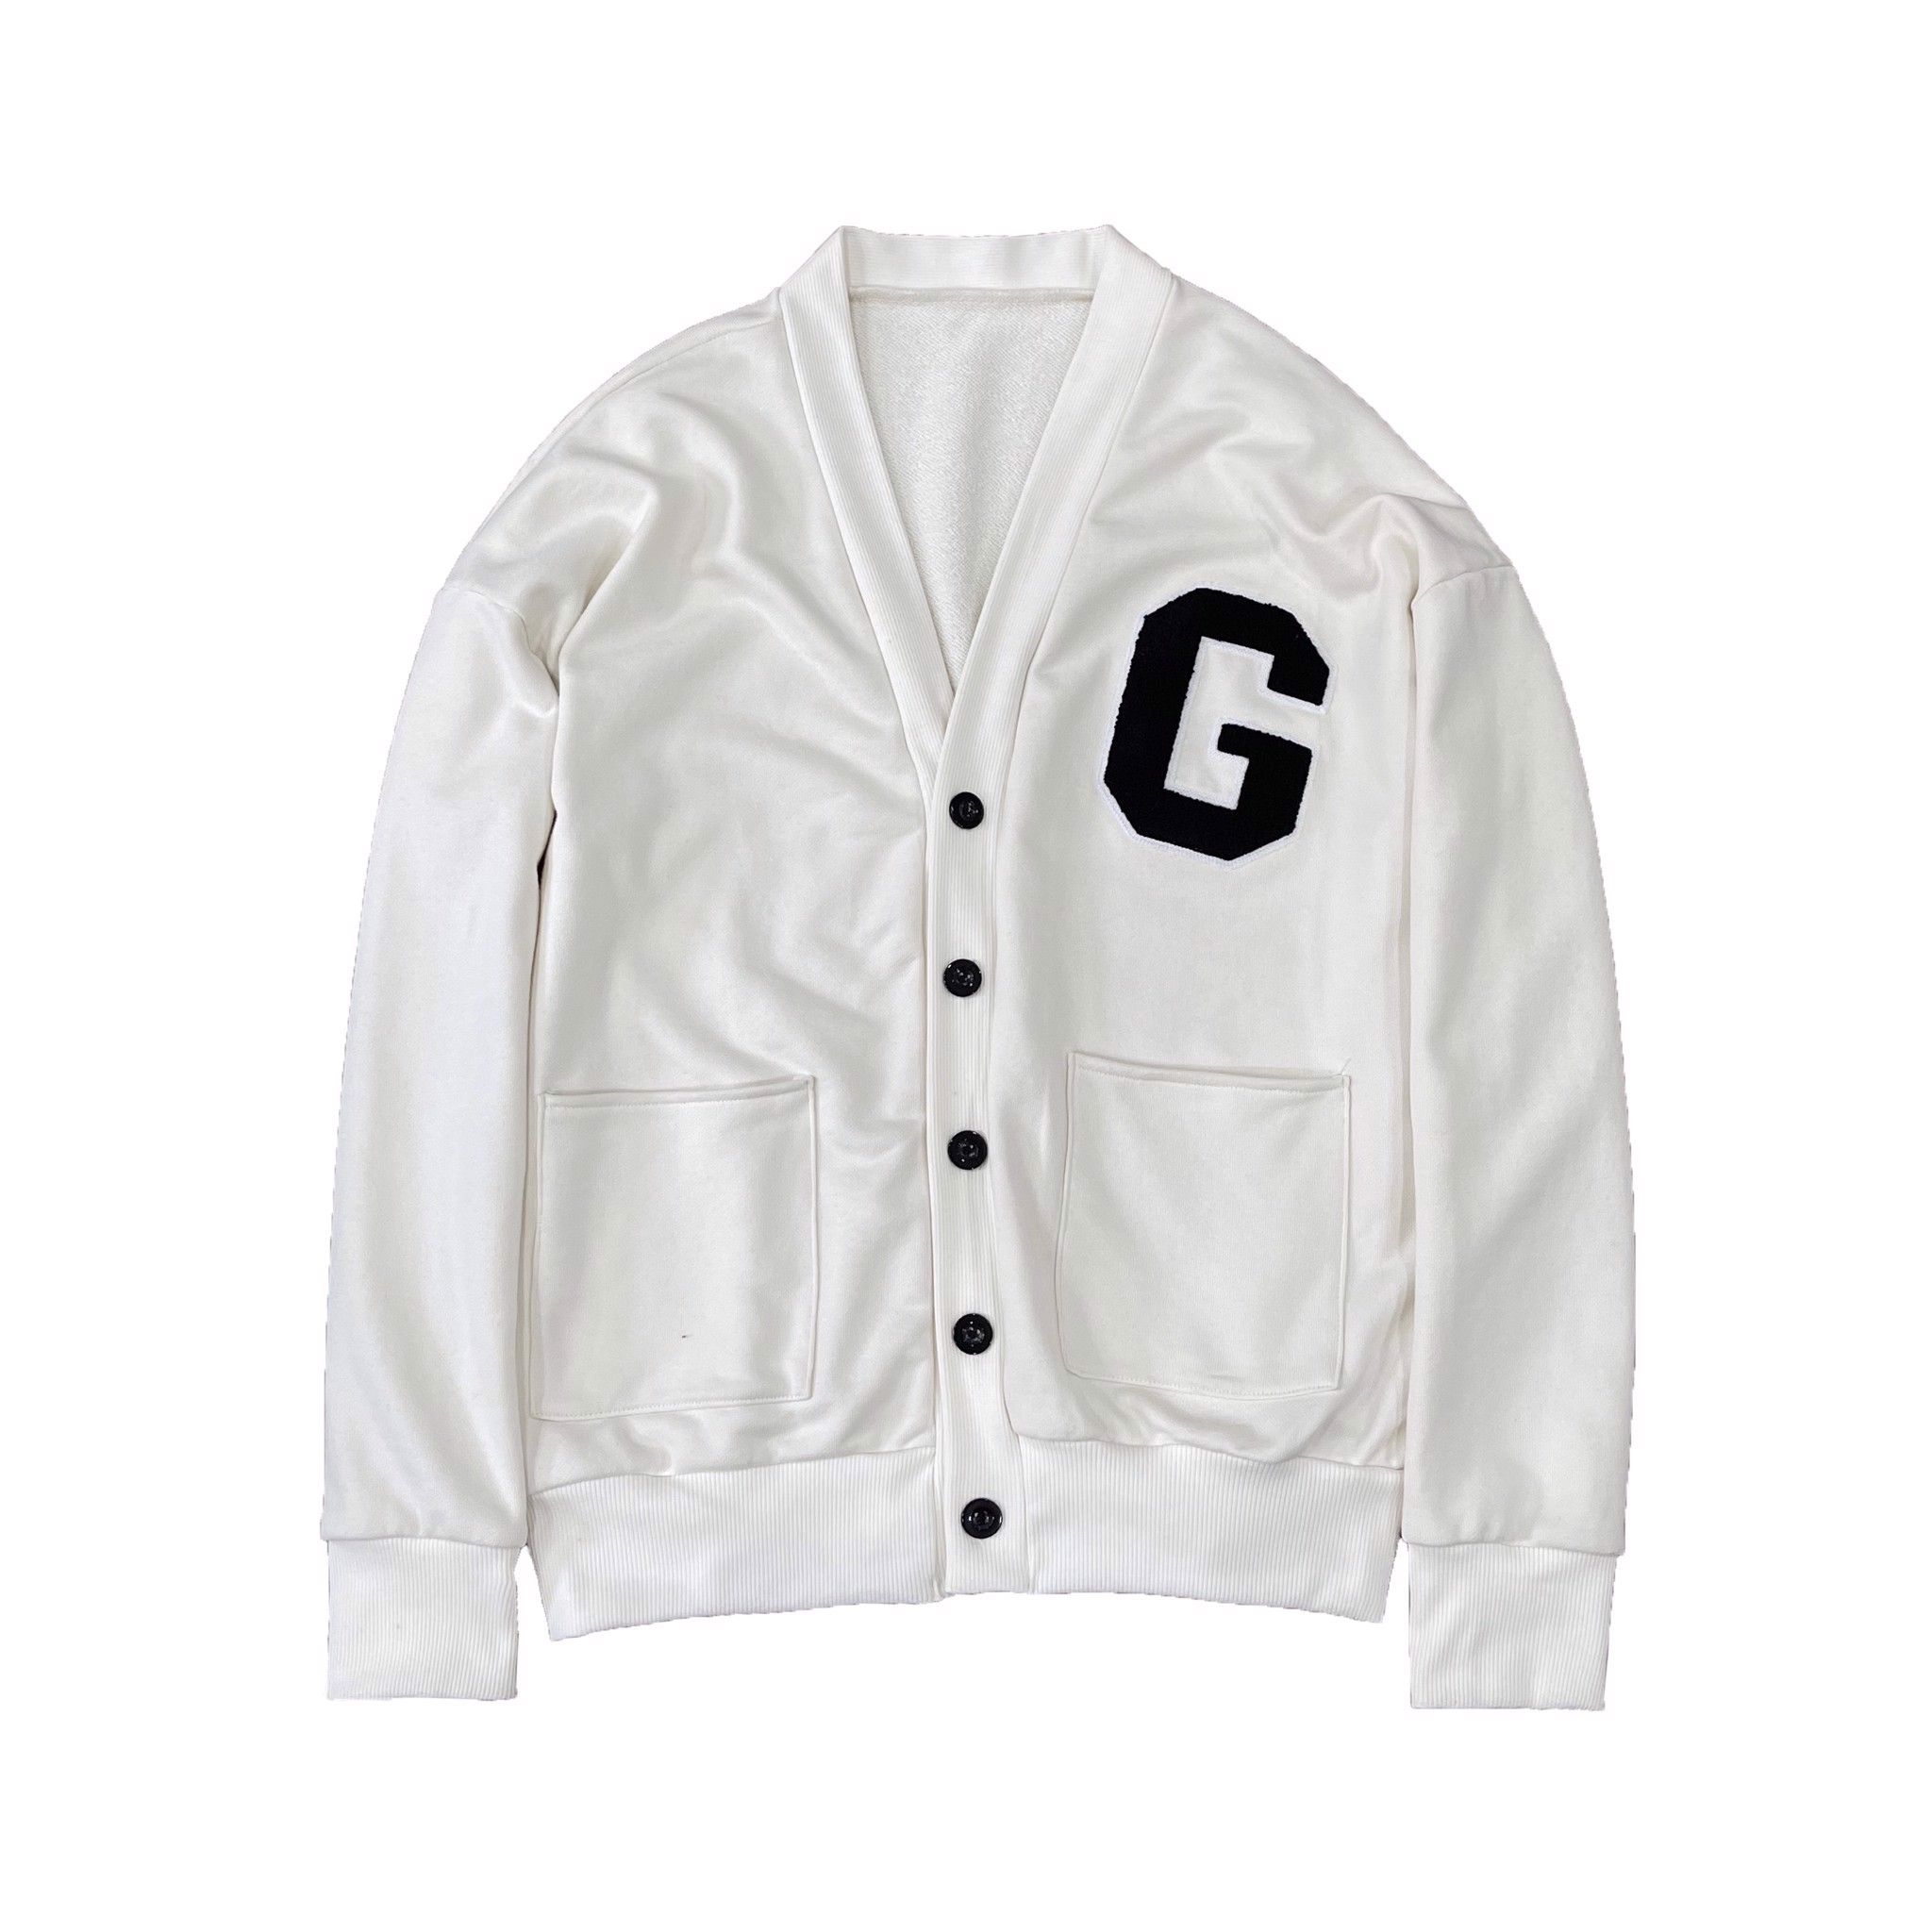 THE G CARDIGAN - CREAM WHITE